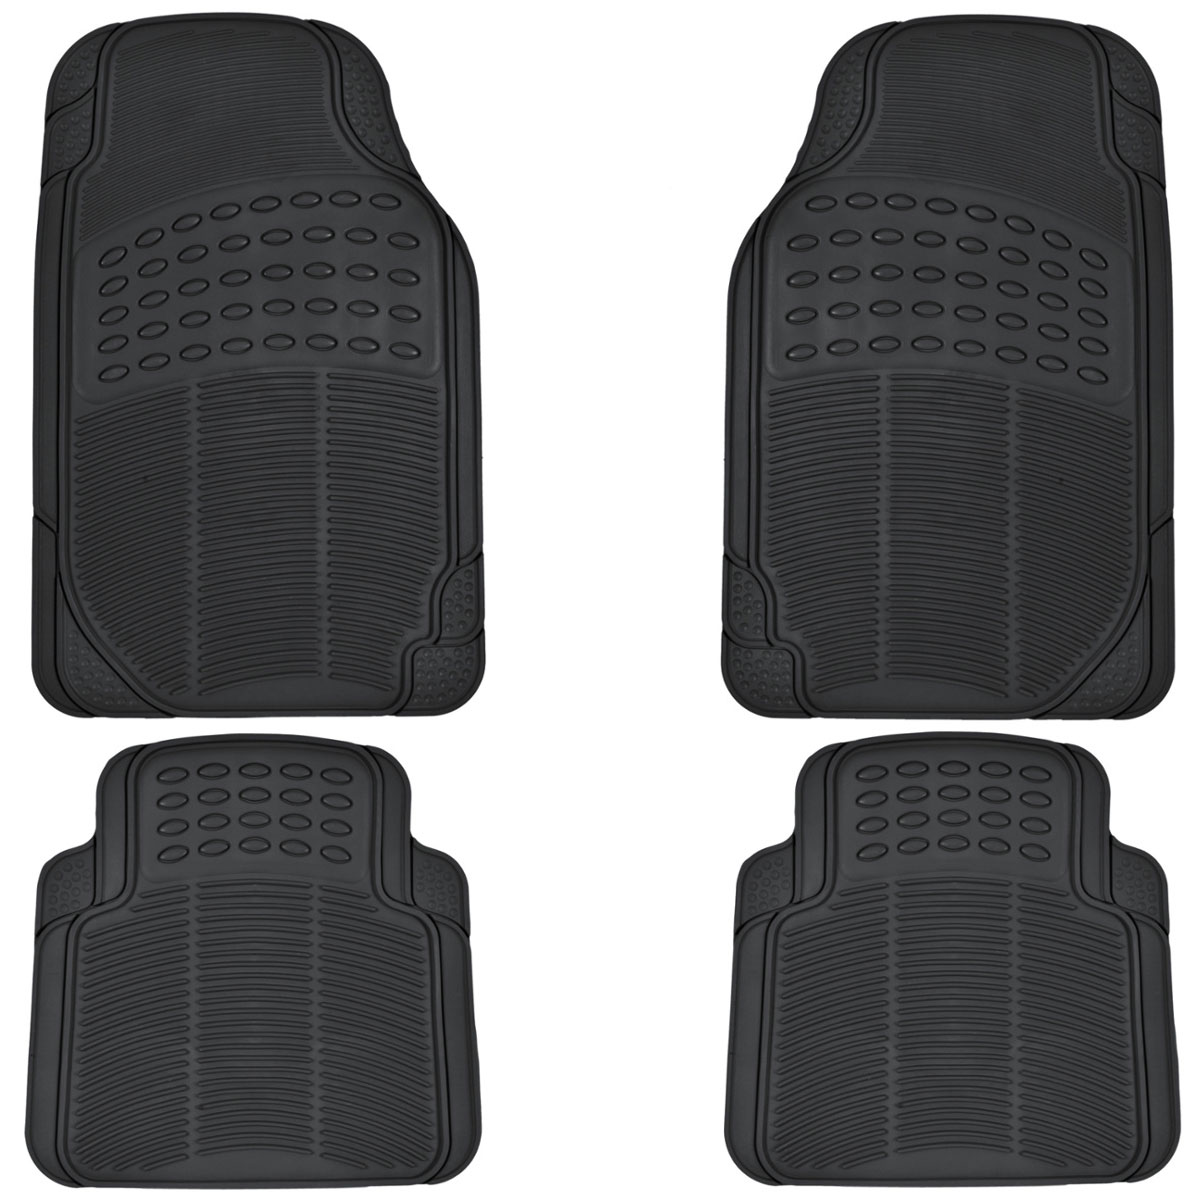 carpets hyundai black liners oem catalog set mats used sonata carpet floor of for cover and sale